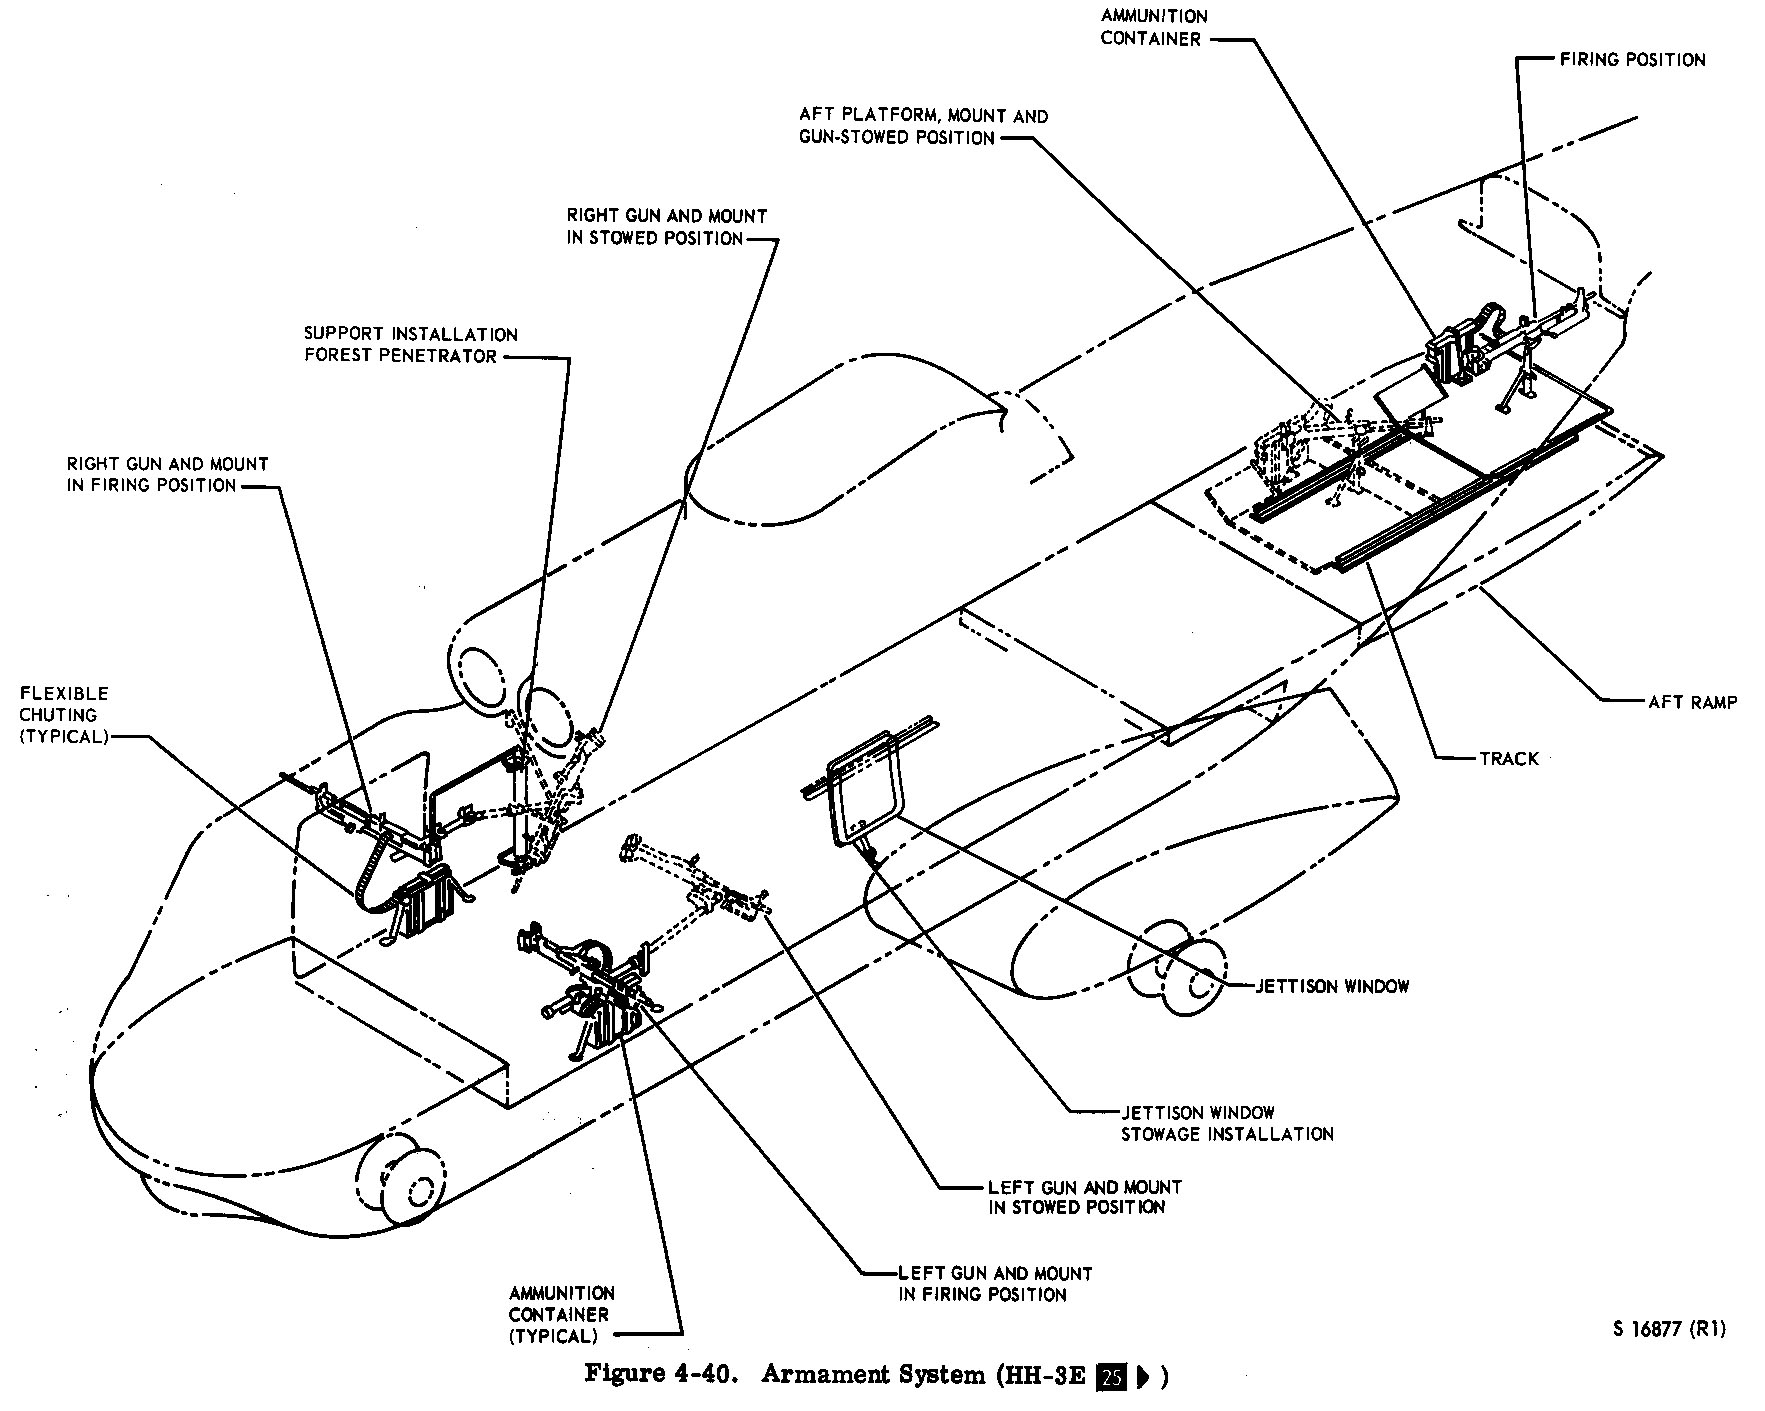 H-3E_Diagram_2_copy Helicopter Schematic Diagram on predator drone diagram, aircraft wiring diagram, airplane passenger diagram, helicopter engine diagram, airplane parts diagram, helicopter parts diagram, engine 2 stroke carb diagram, helicopter assembly diagram, helicopter electrical wiring diagram,